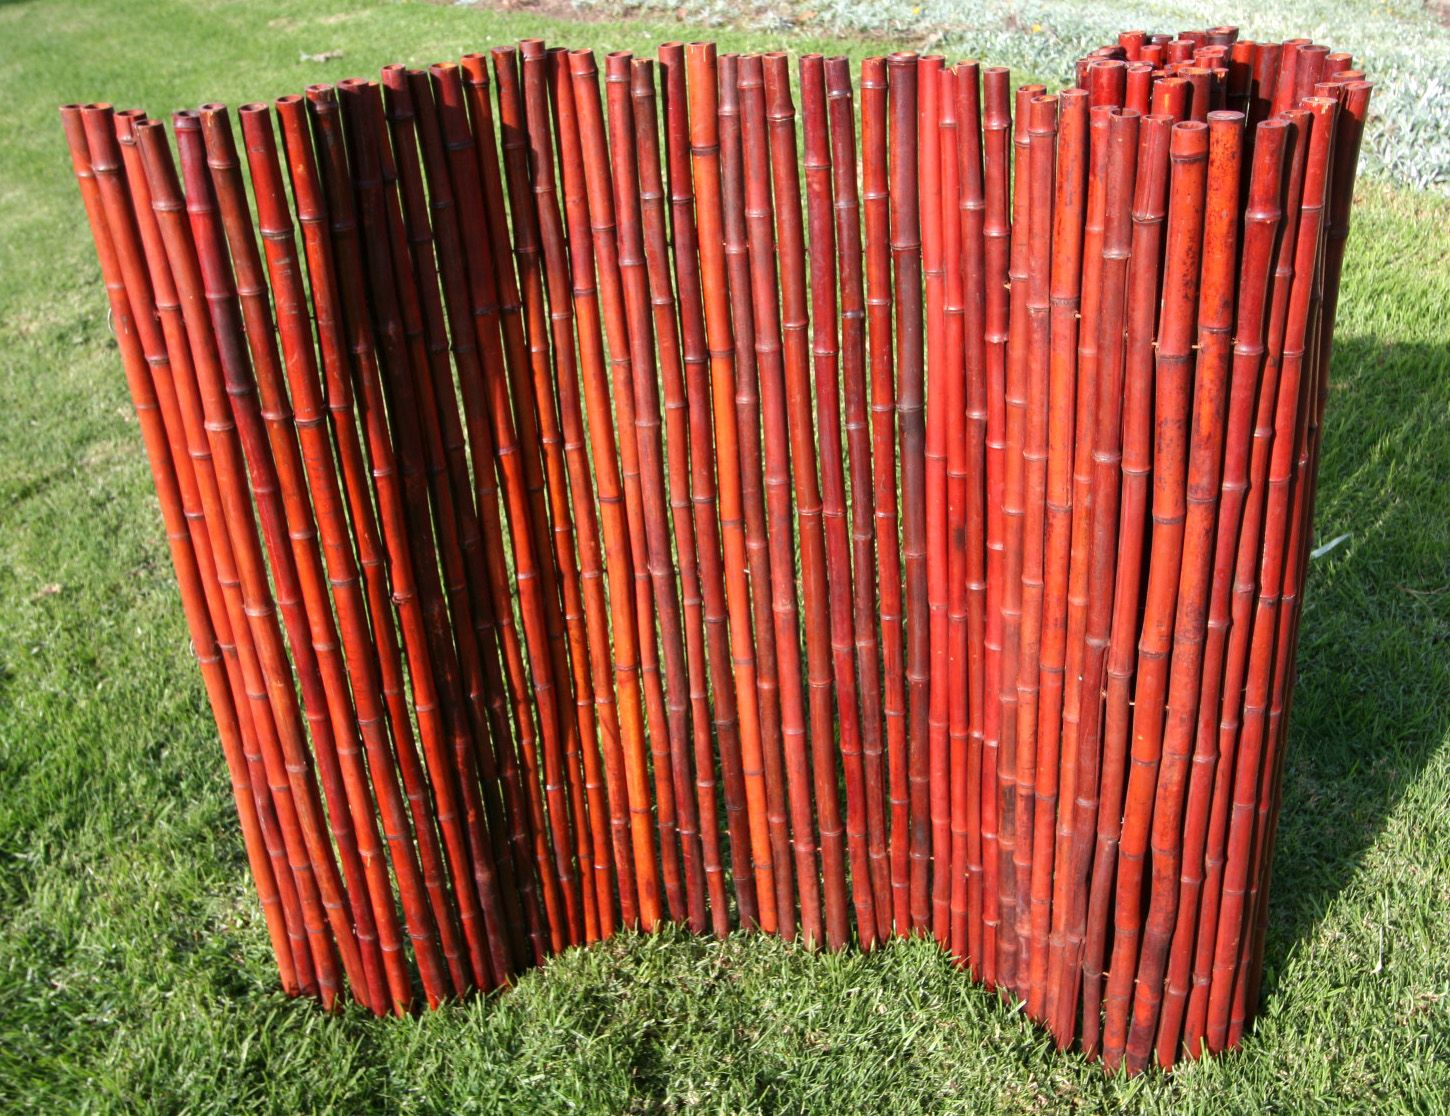 Bamboo fence panels are easy to install and can be used to